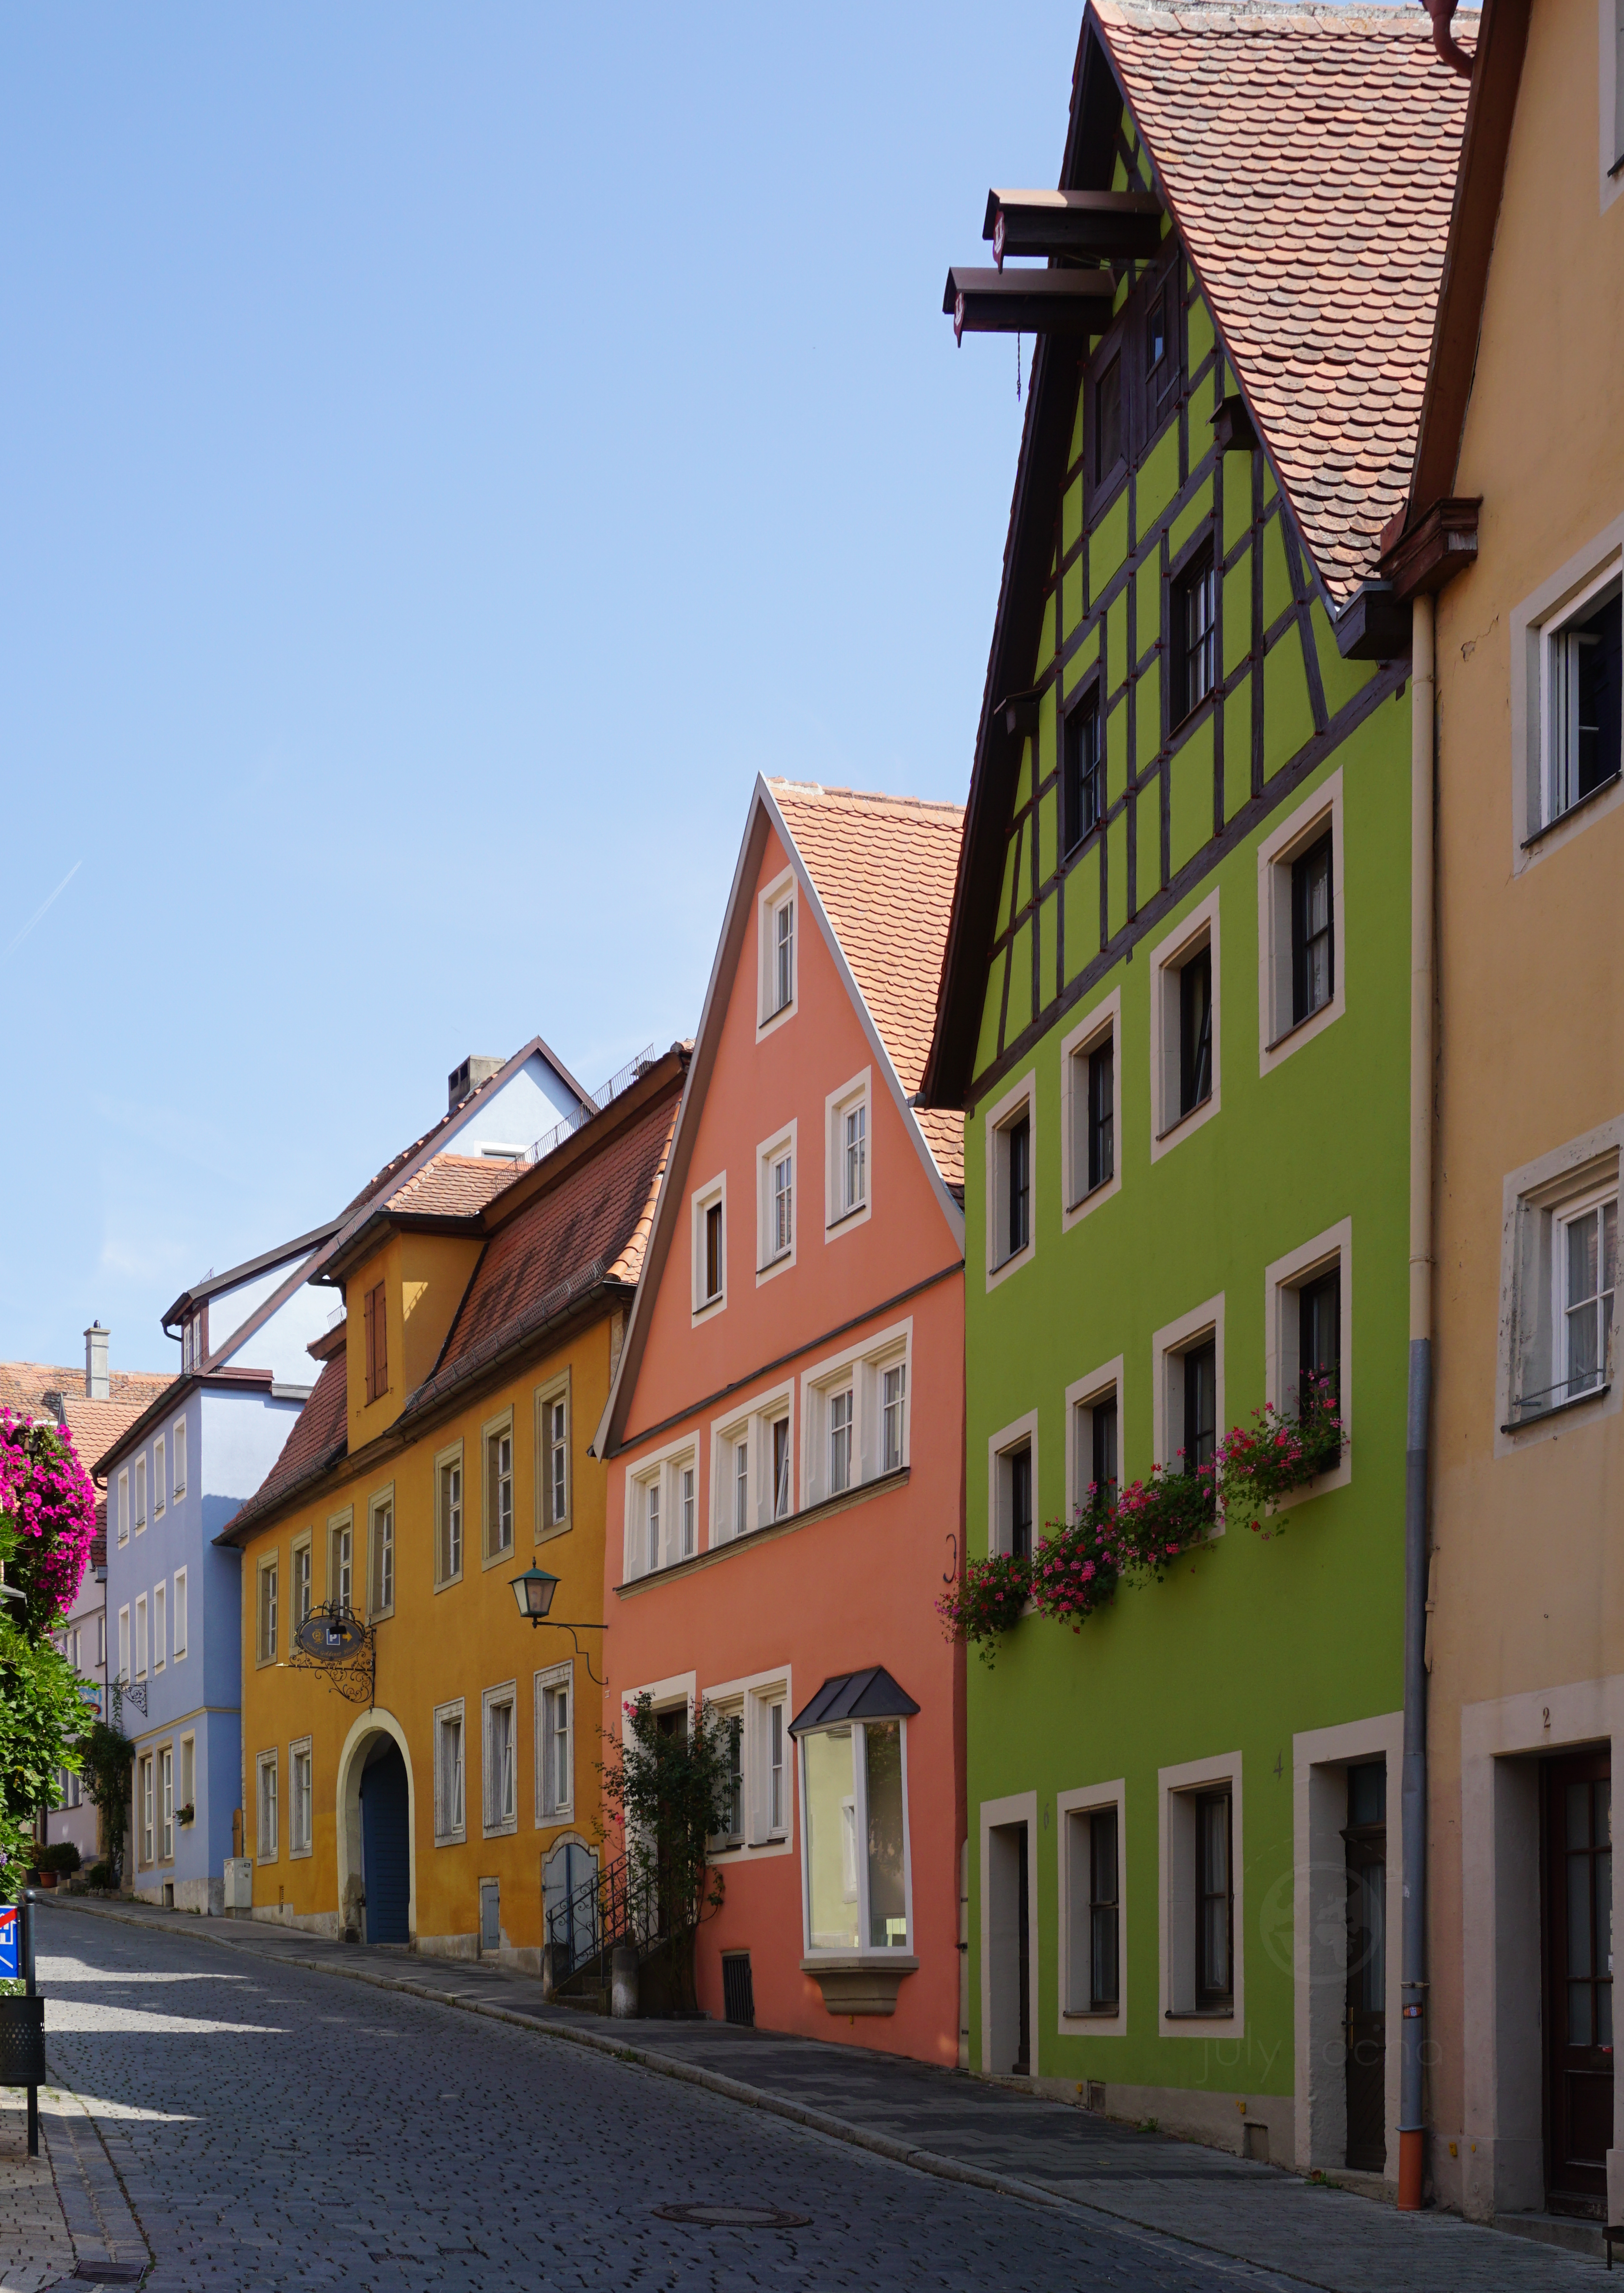 Rothenburg (1 of 1)